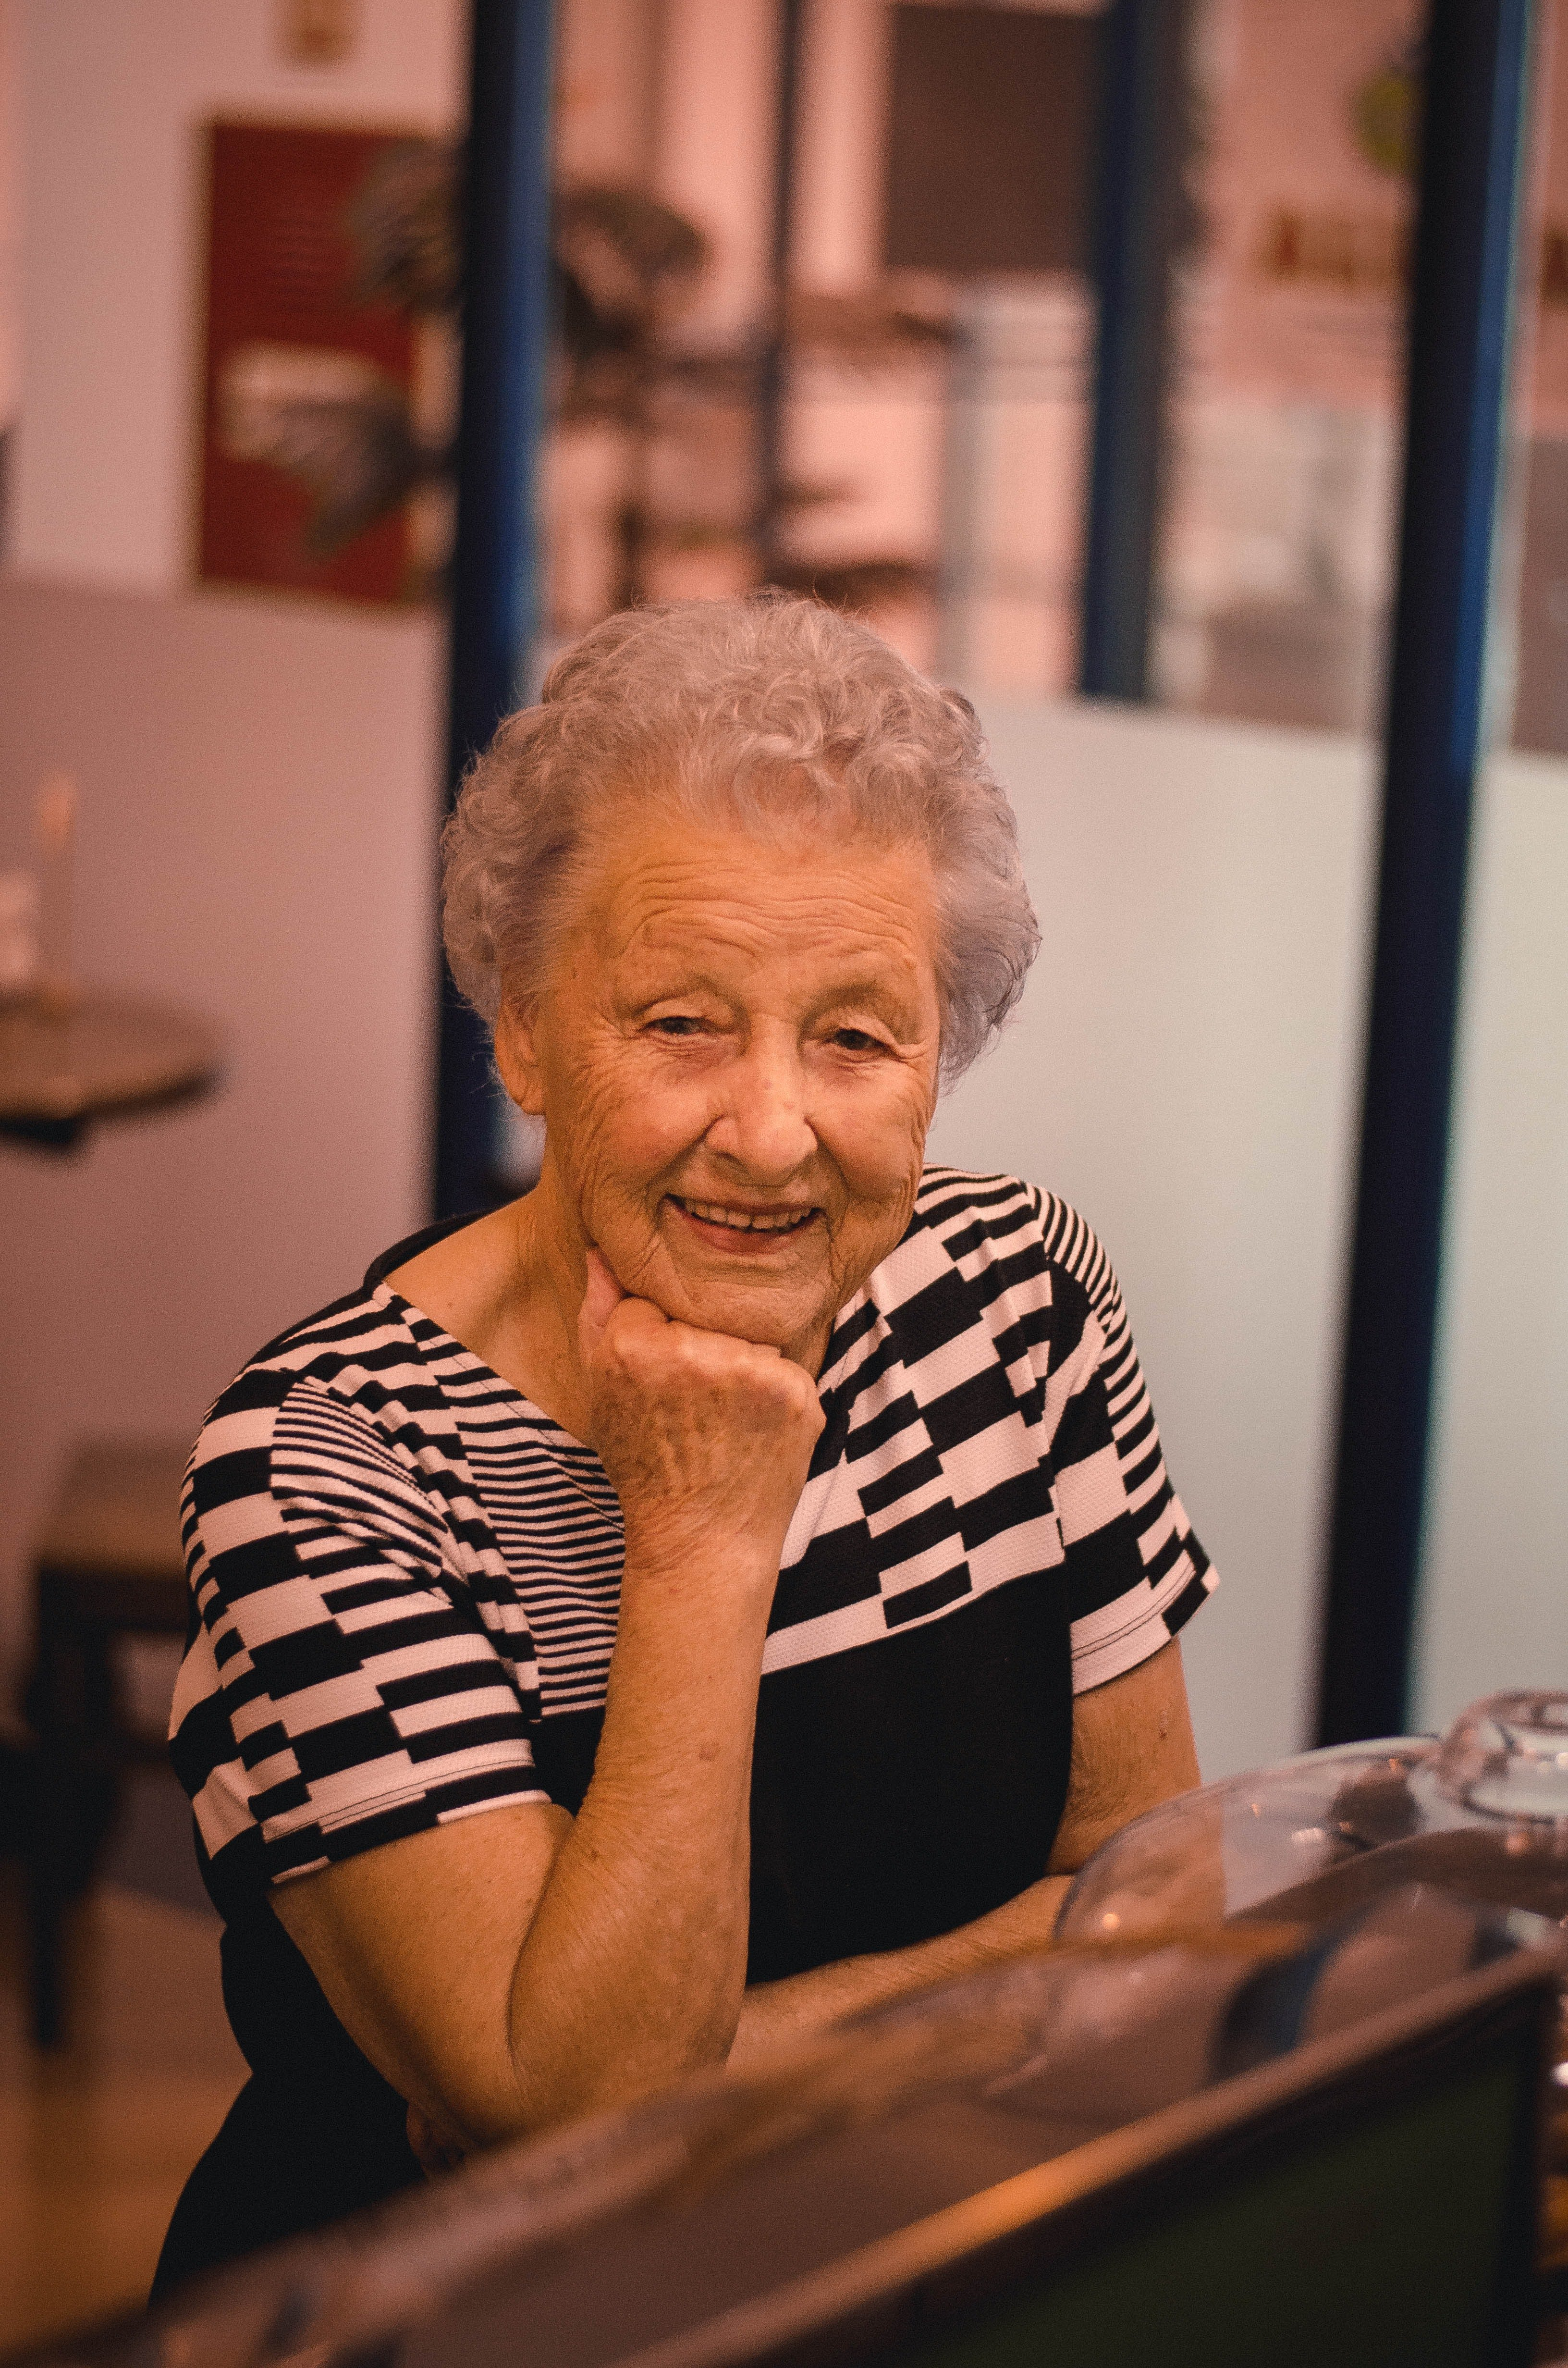 Photo of a smiling old woman | Photo: Pexels